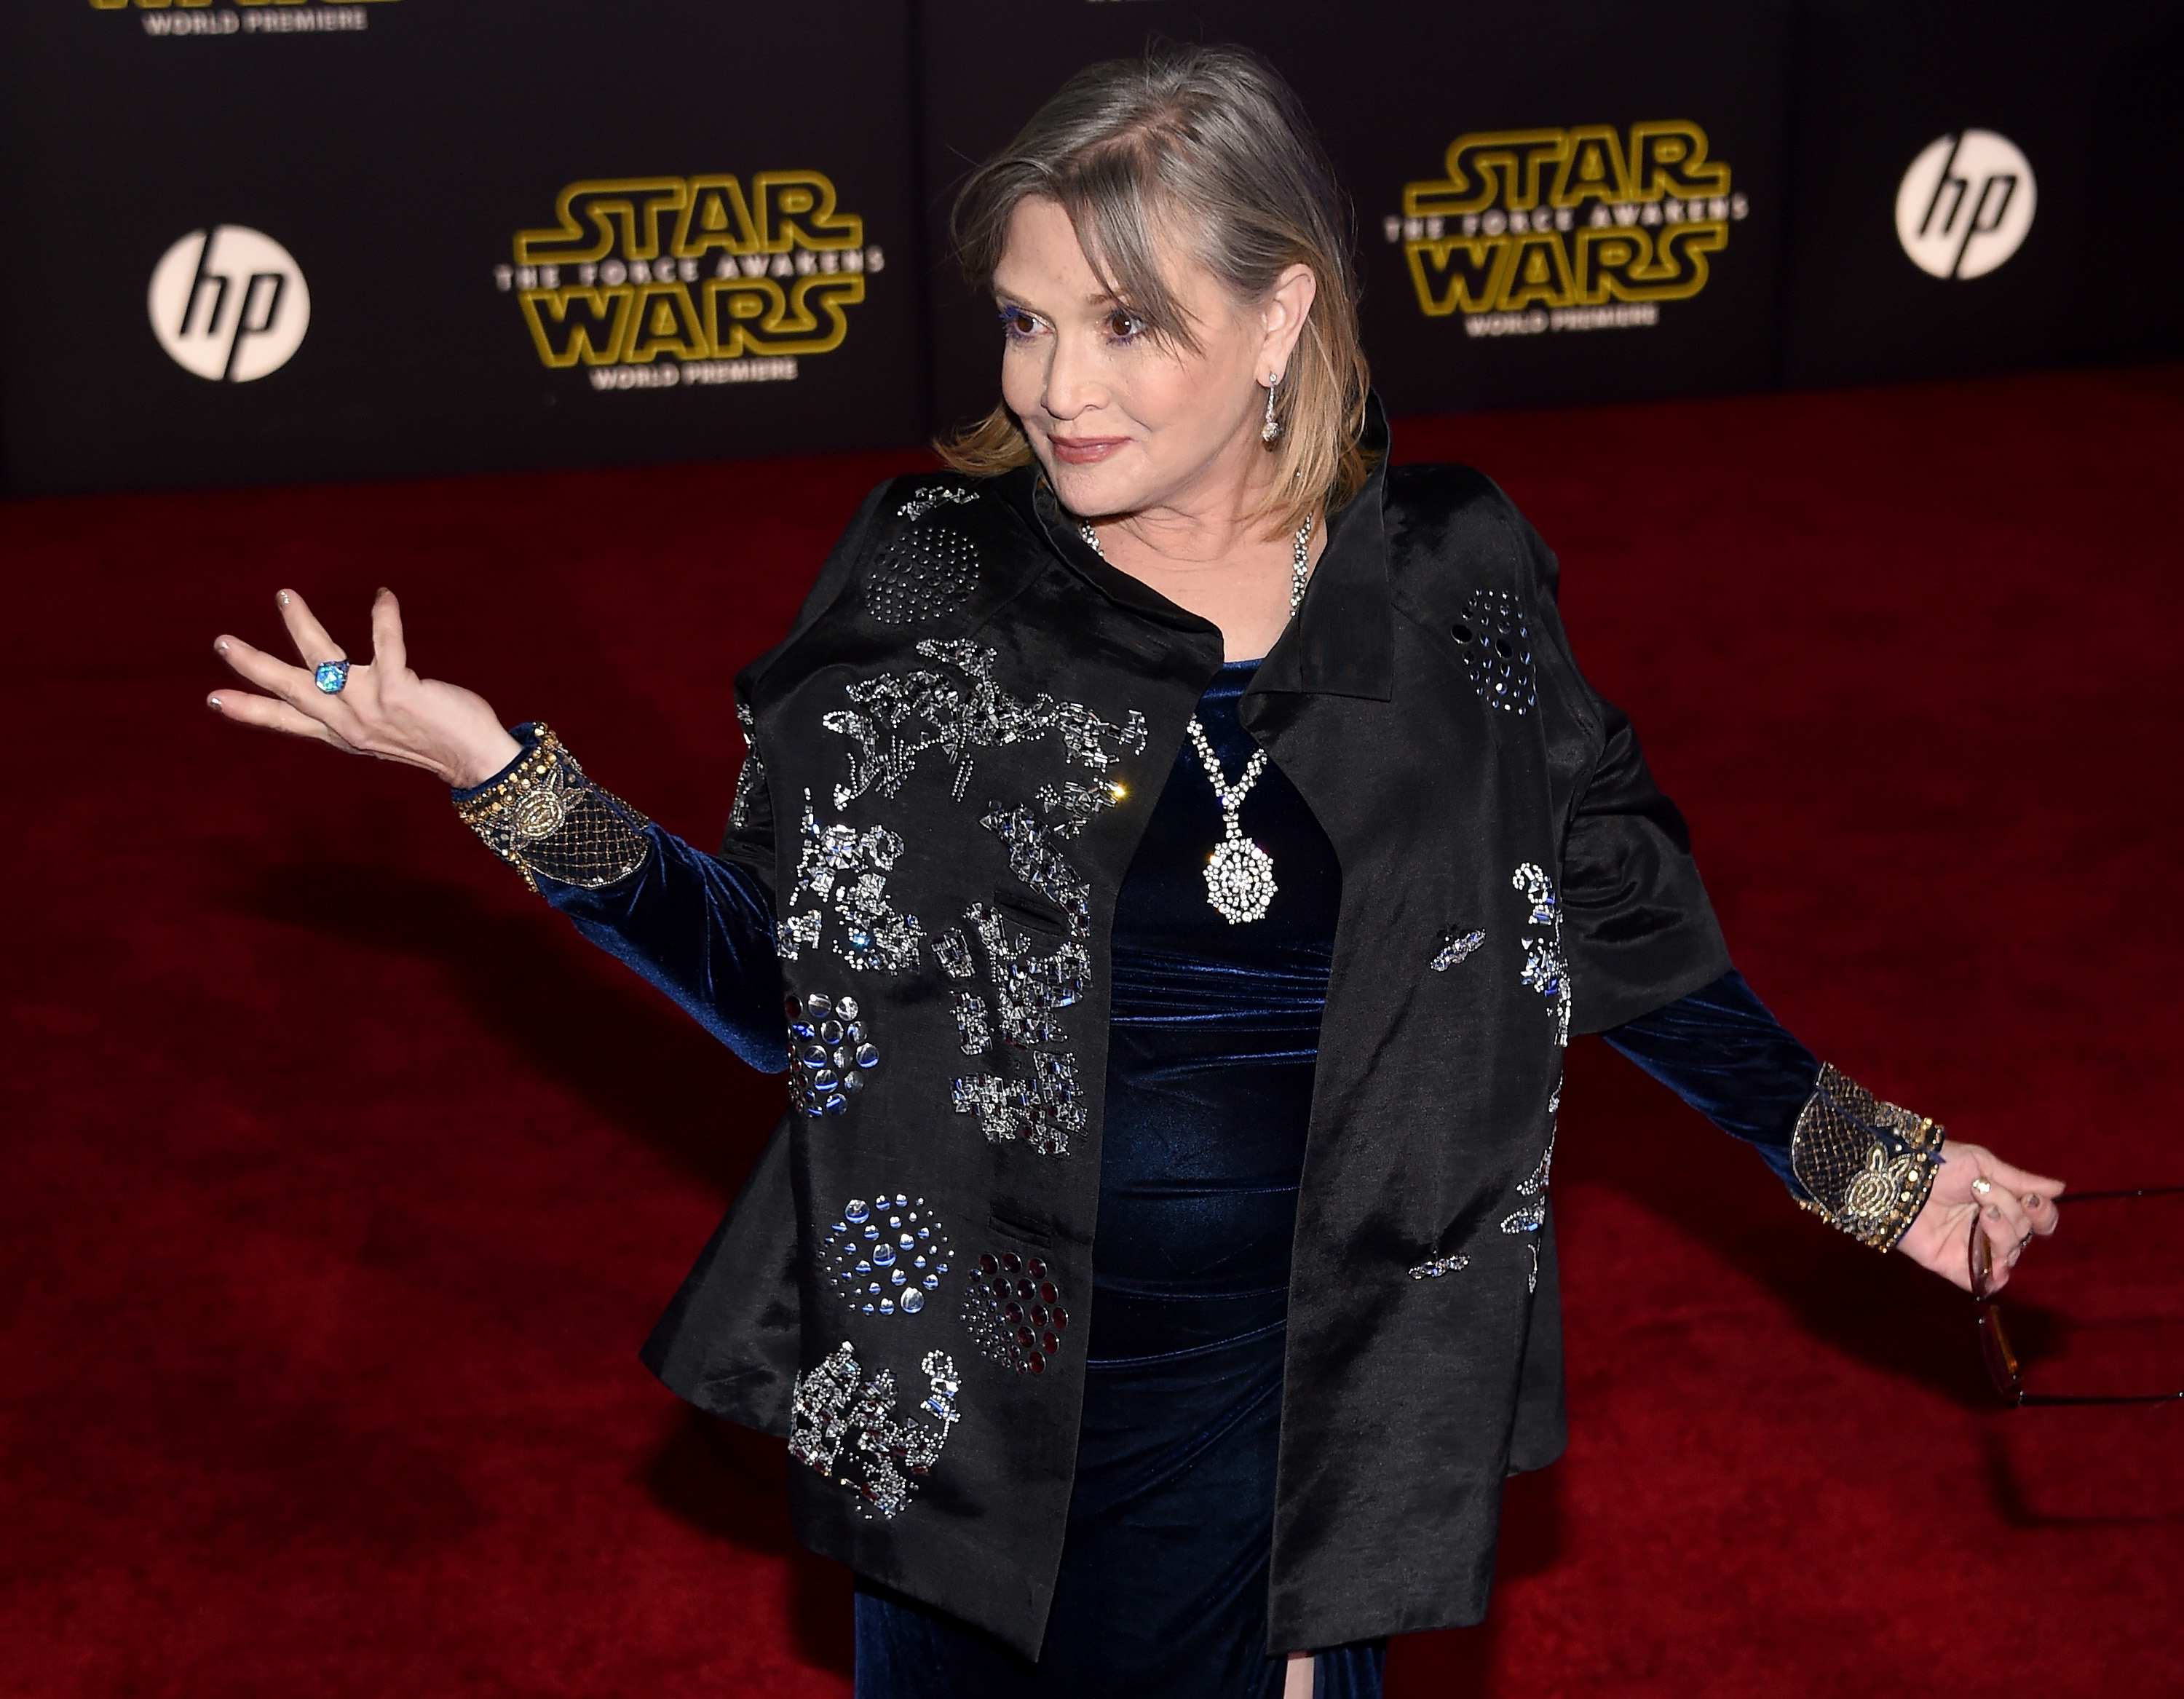 To Carrie Fisher, a woman who knew the power of accepting yourself without apology